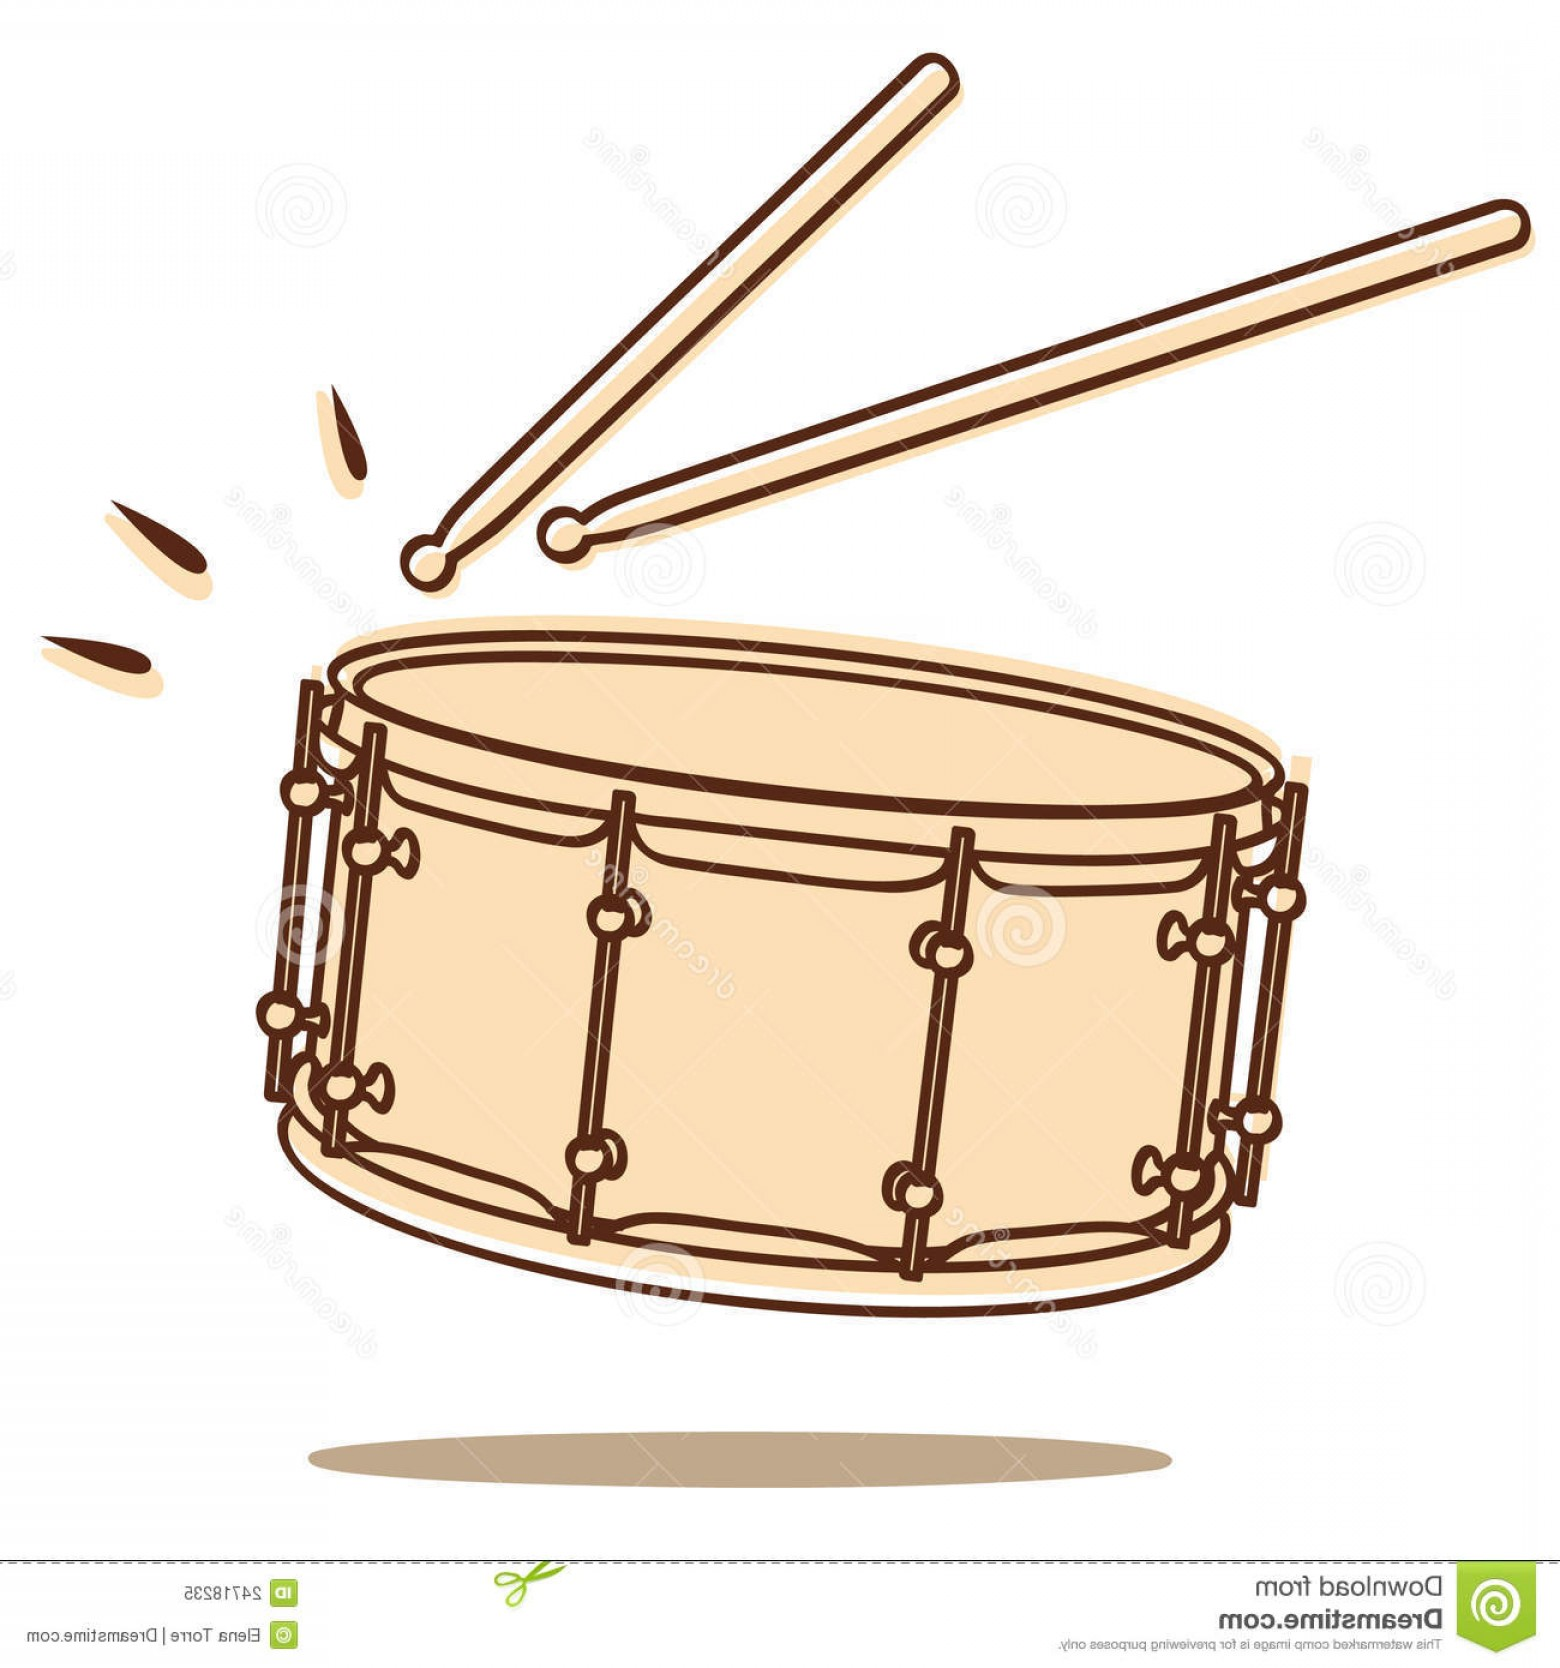 Drum Vector Art: Royalty Free Stock Photo Drum Vector Image